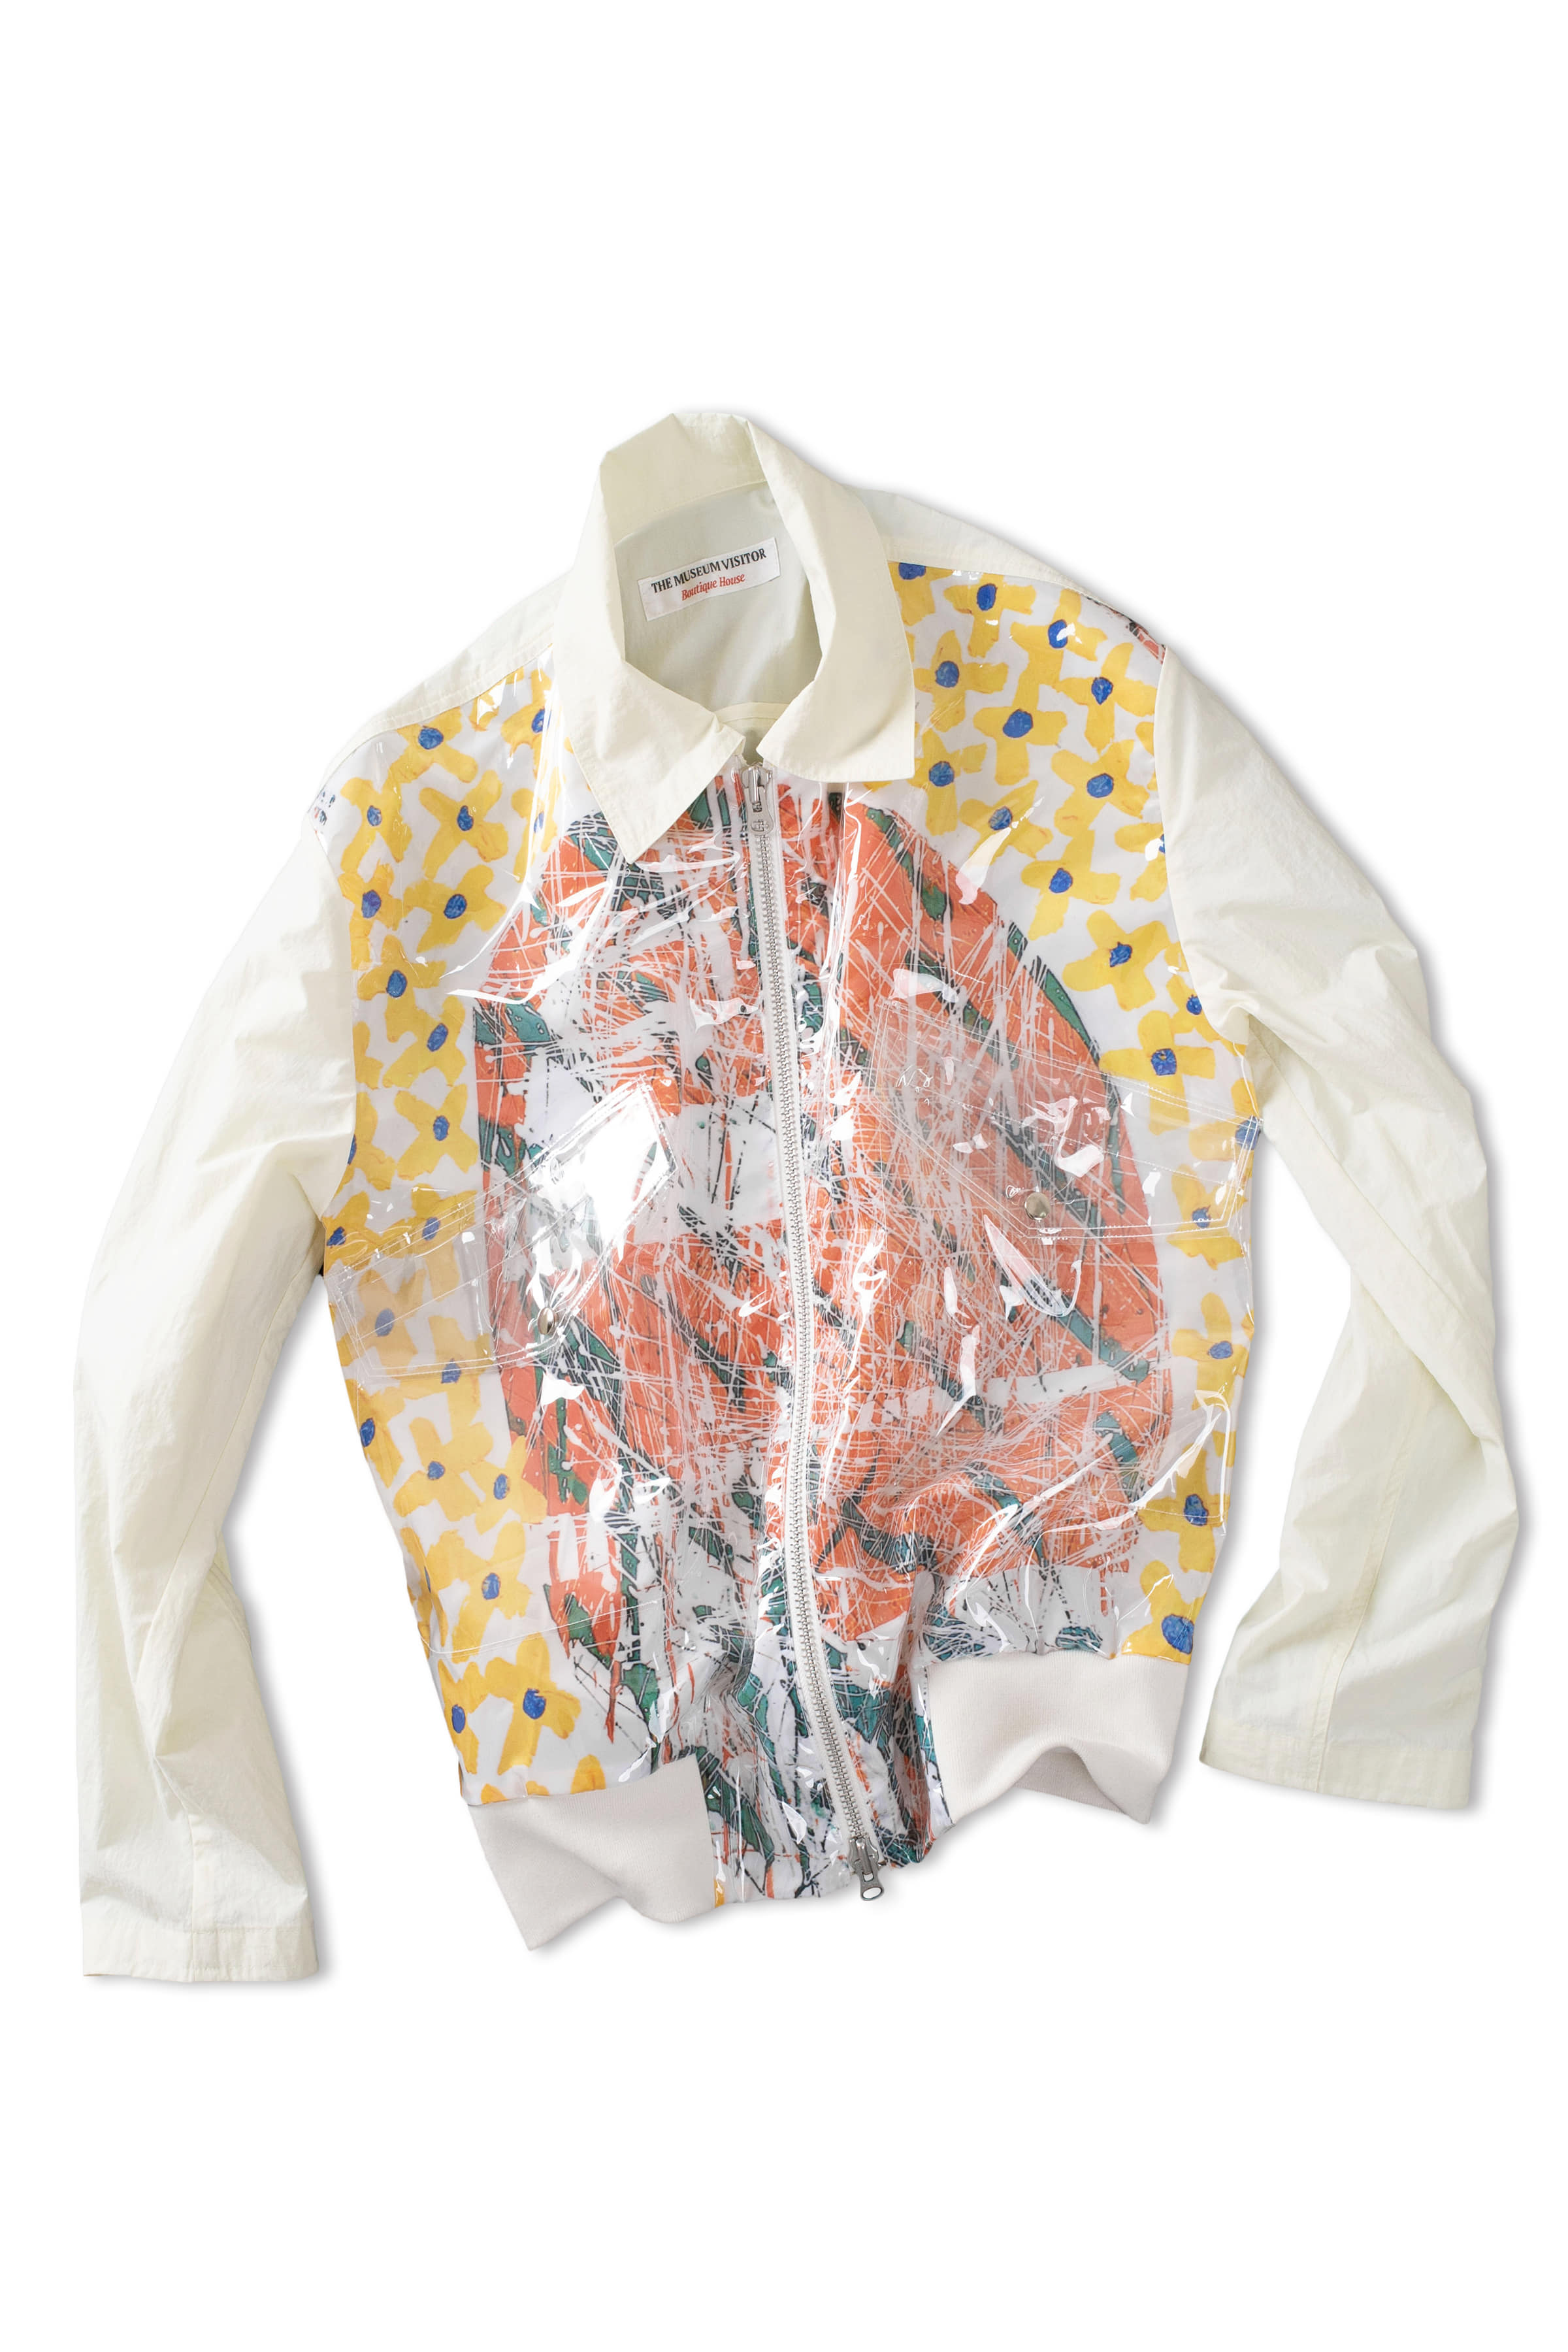 THE MUSEUM VISITOR : Graphic Blouson 09 (Off White)